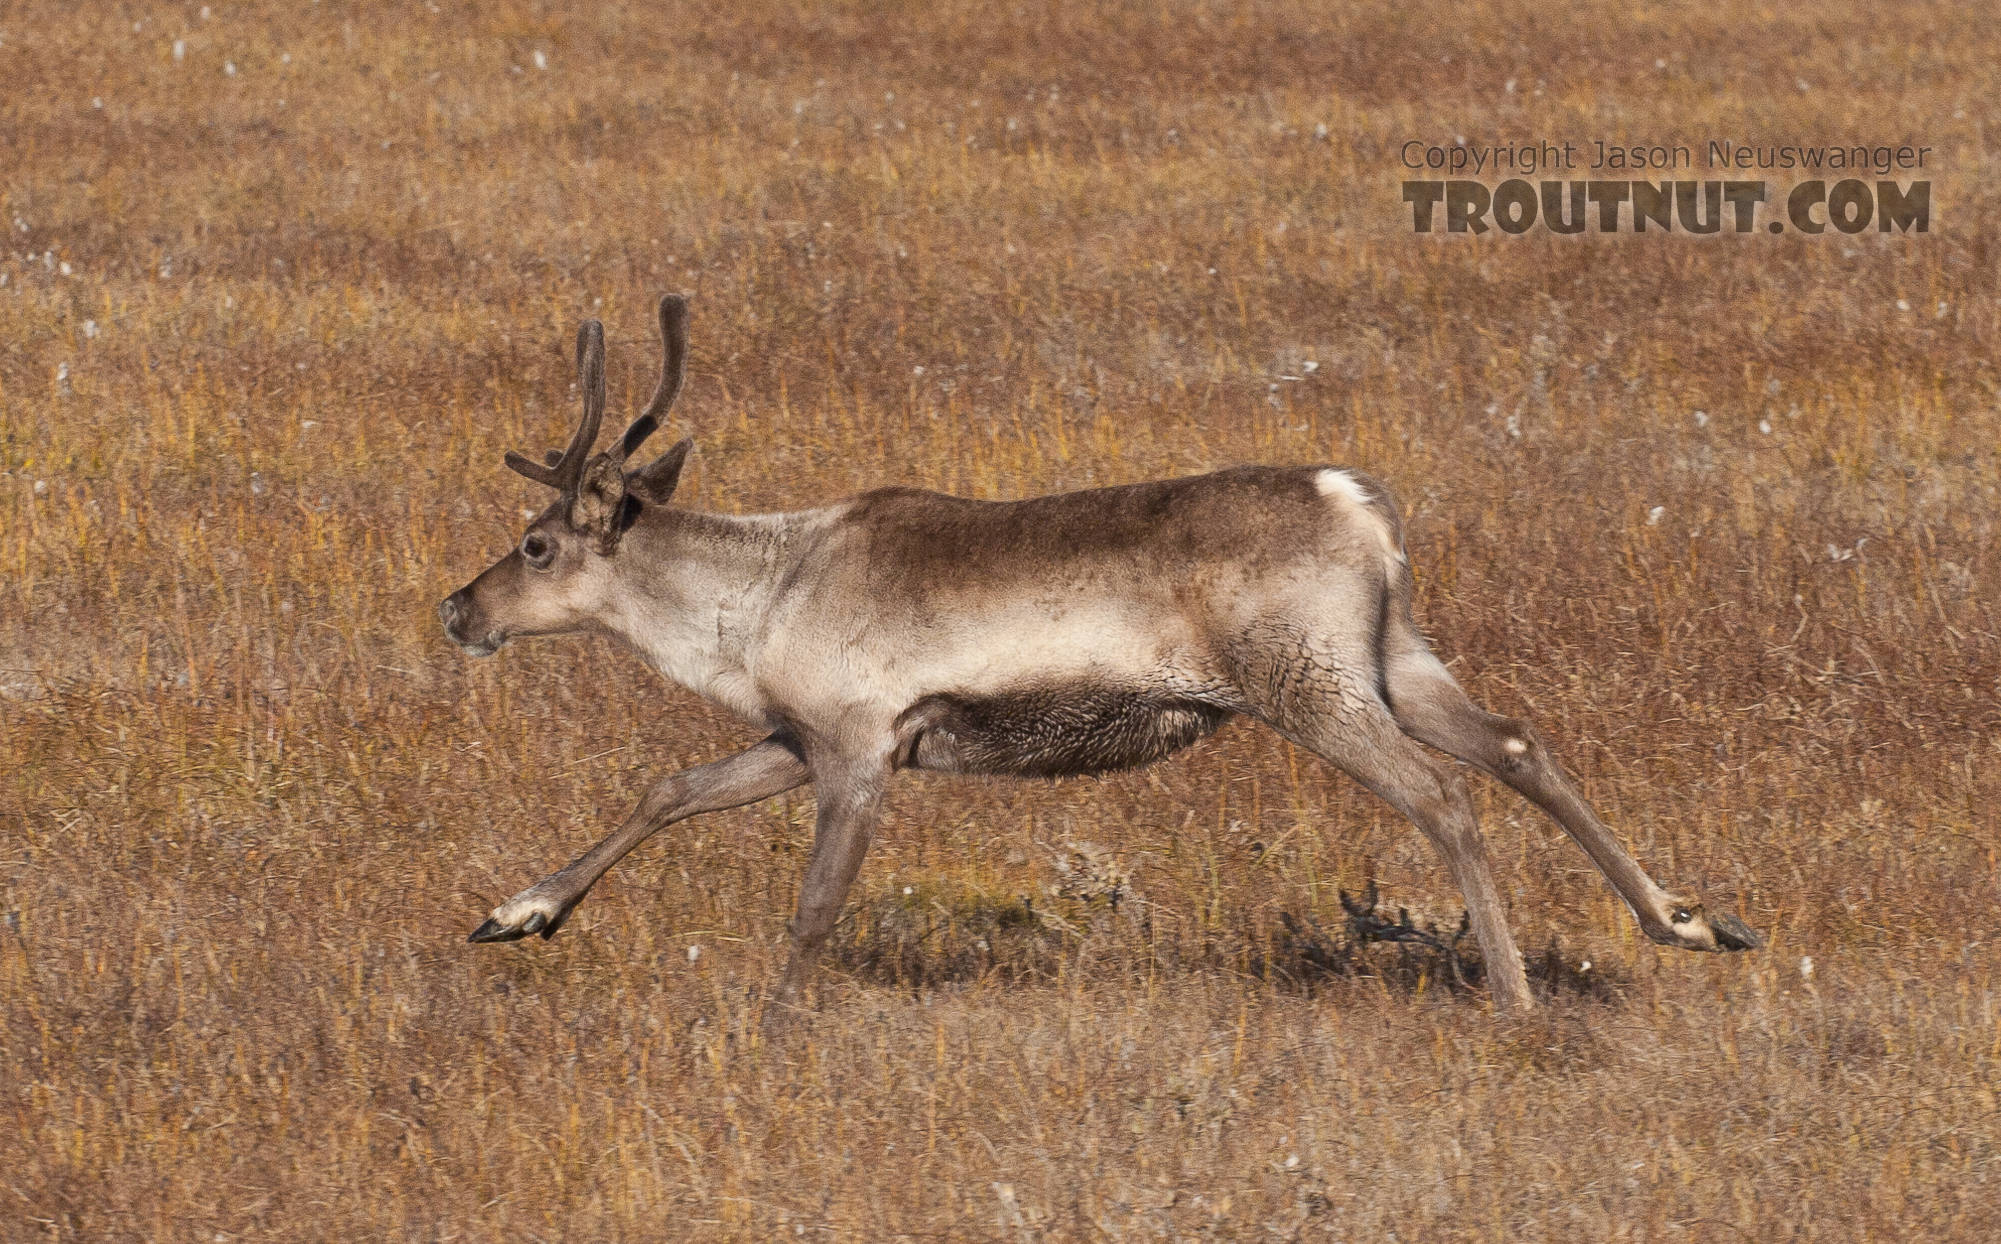 This cow caribou ran across the road in front of my car. From Dalton Highway in Alaska.